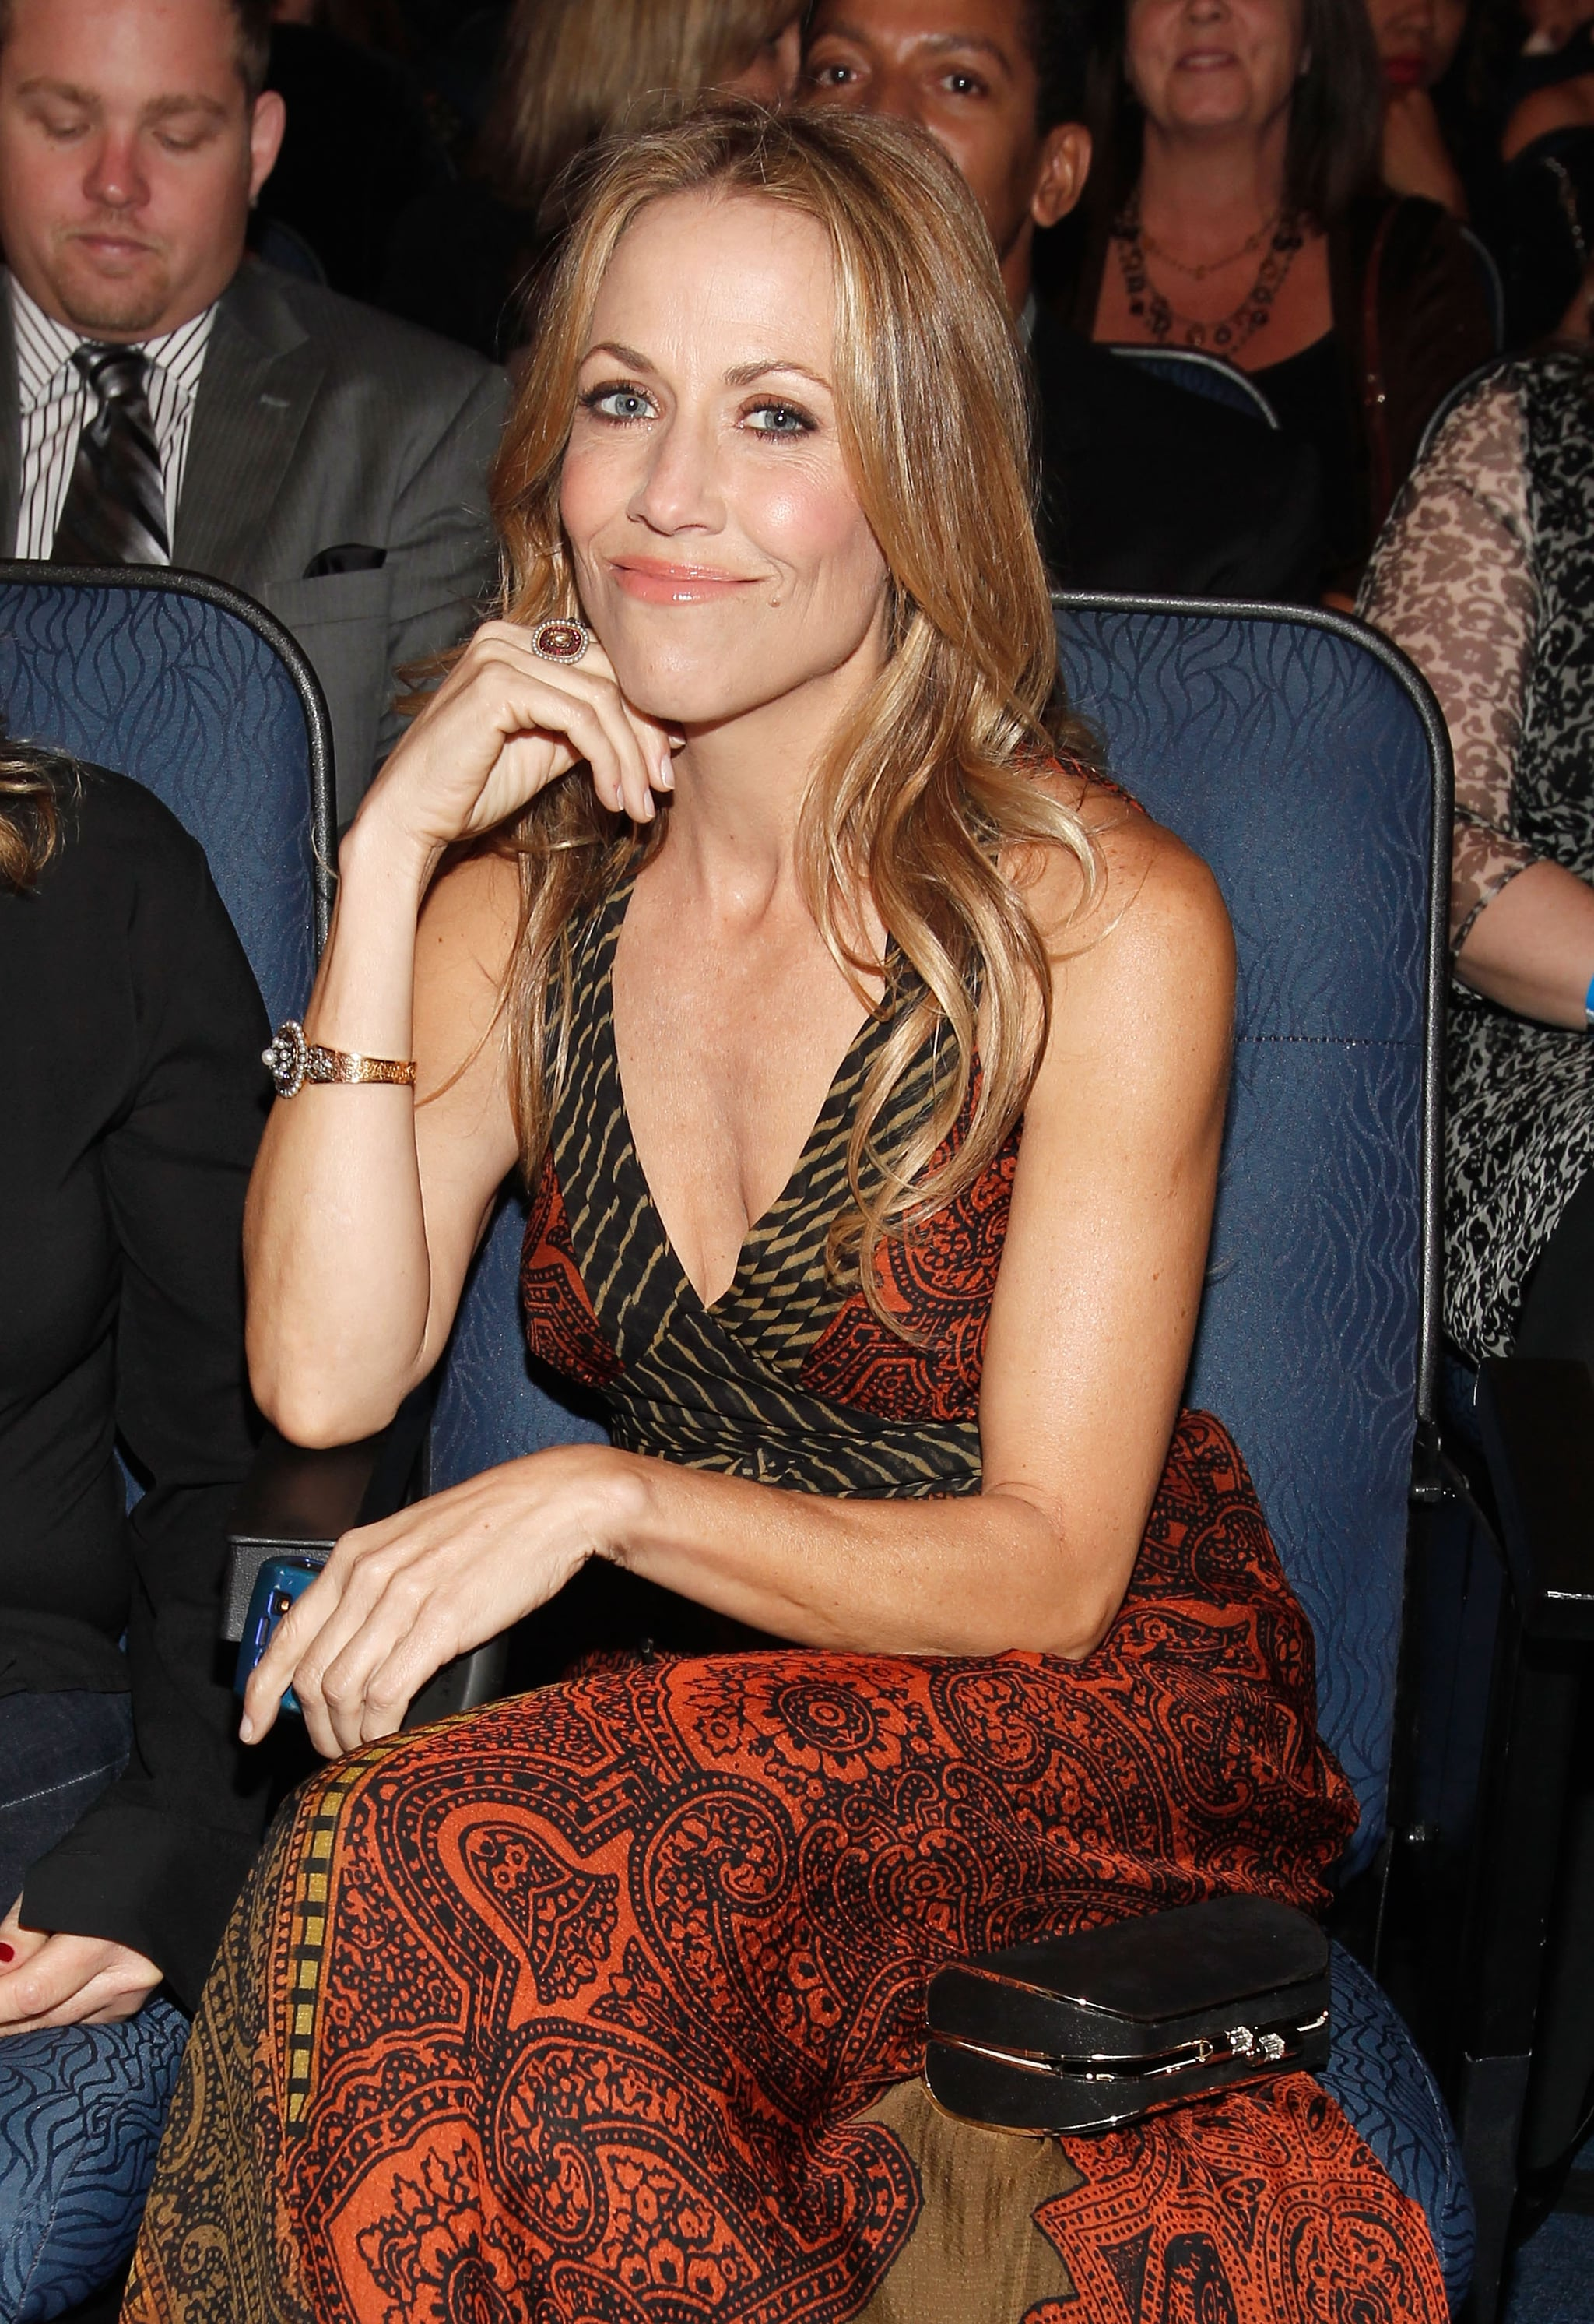 Pictures From AMAs